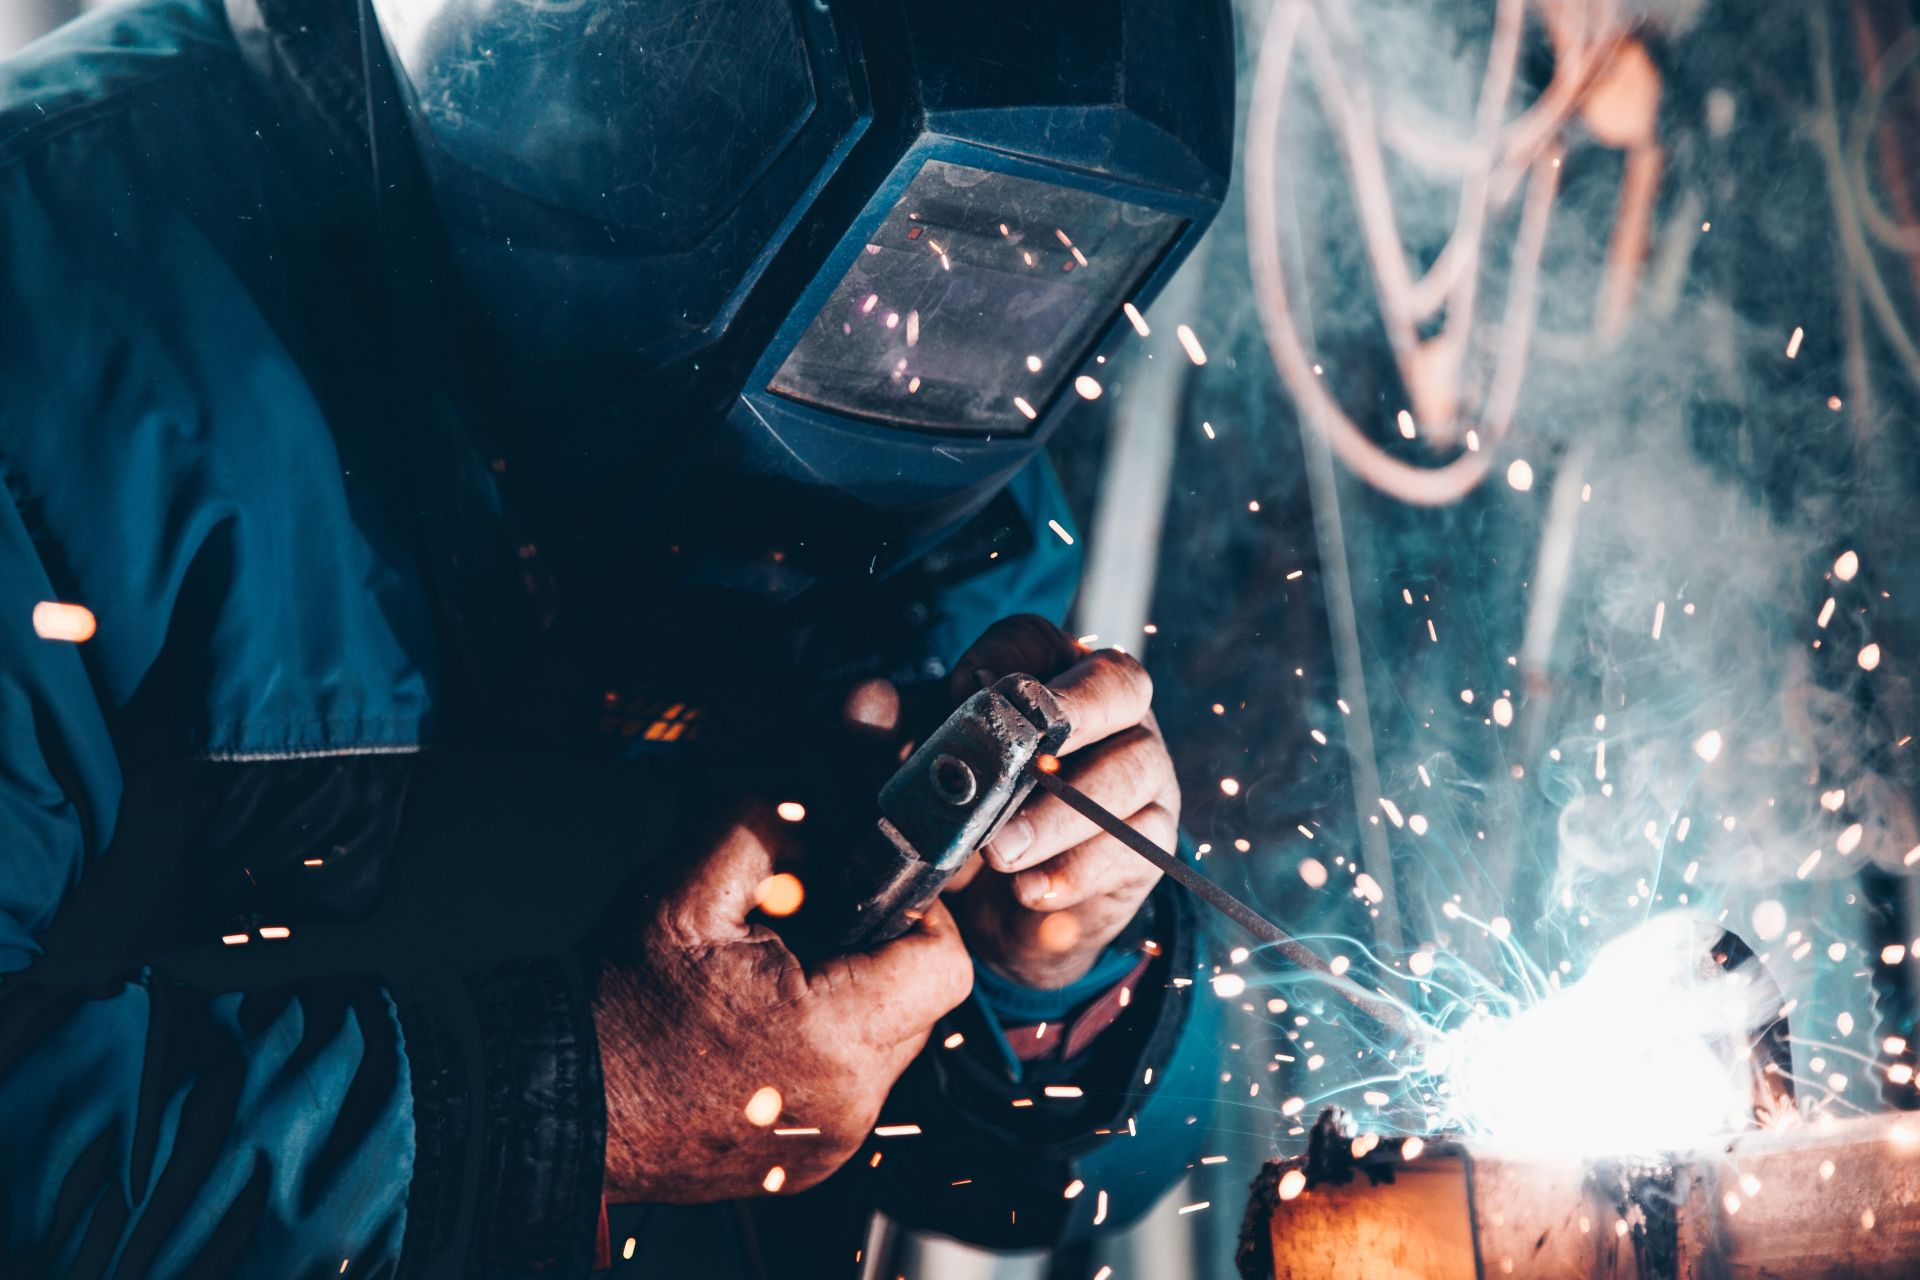 Man welding with welding machine